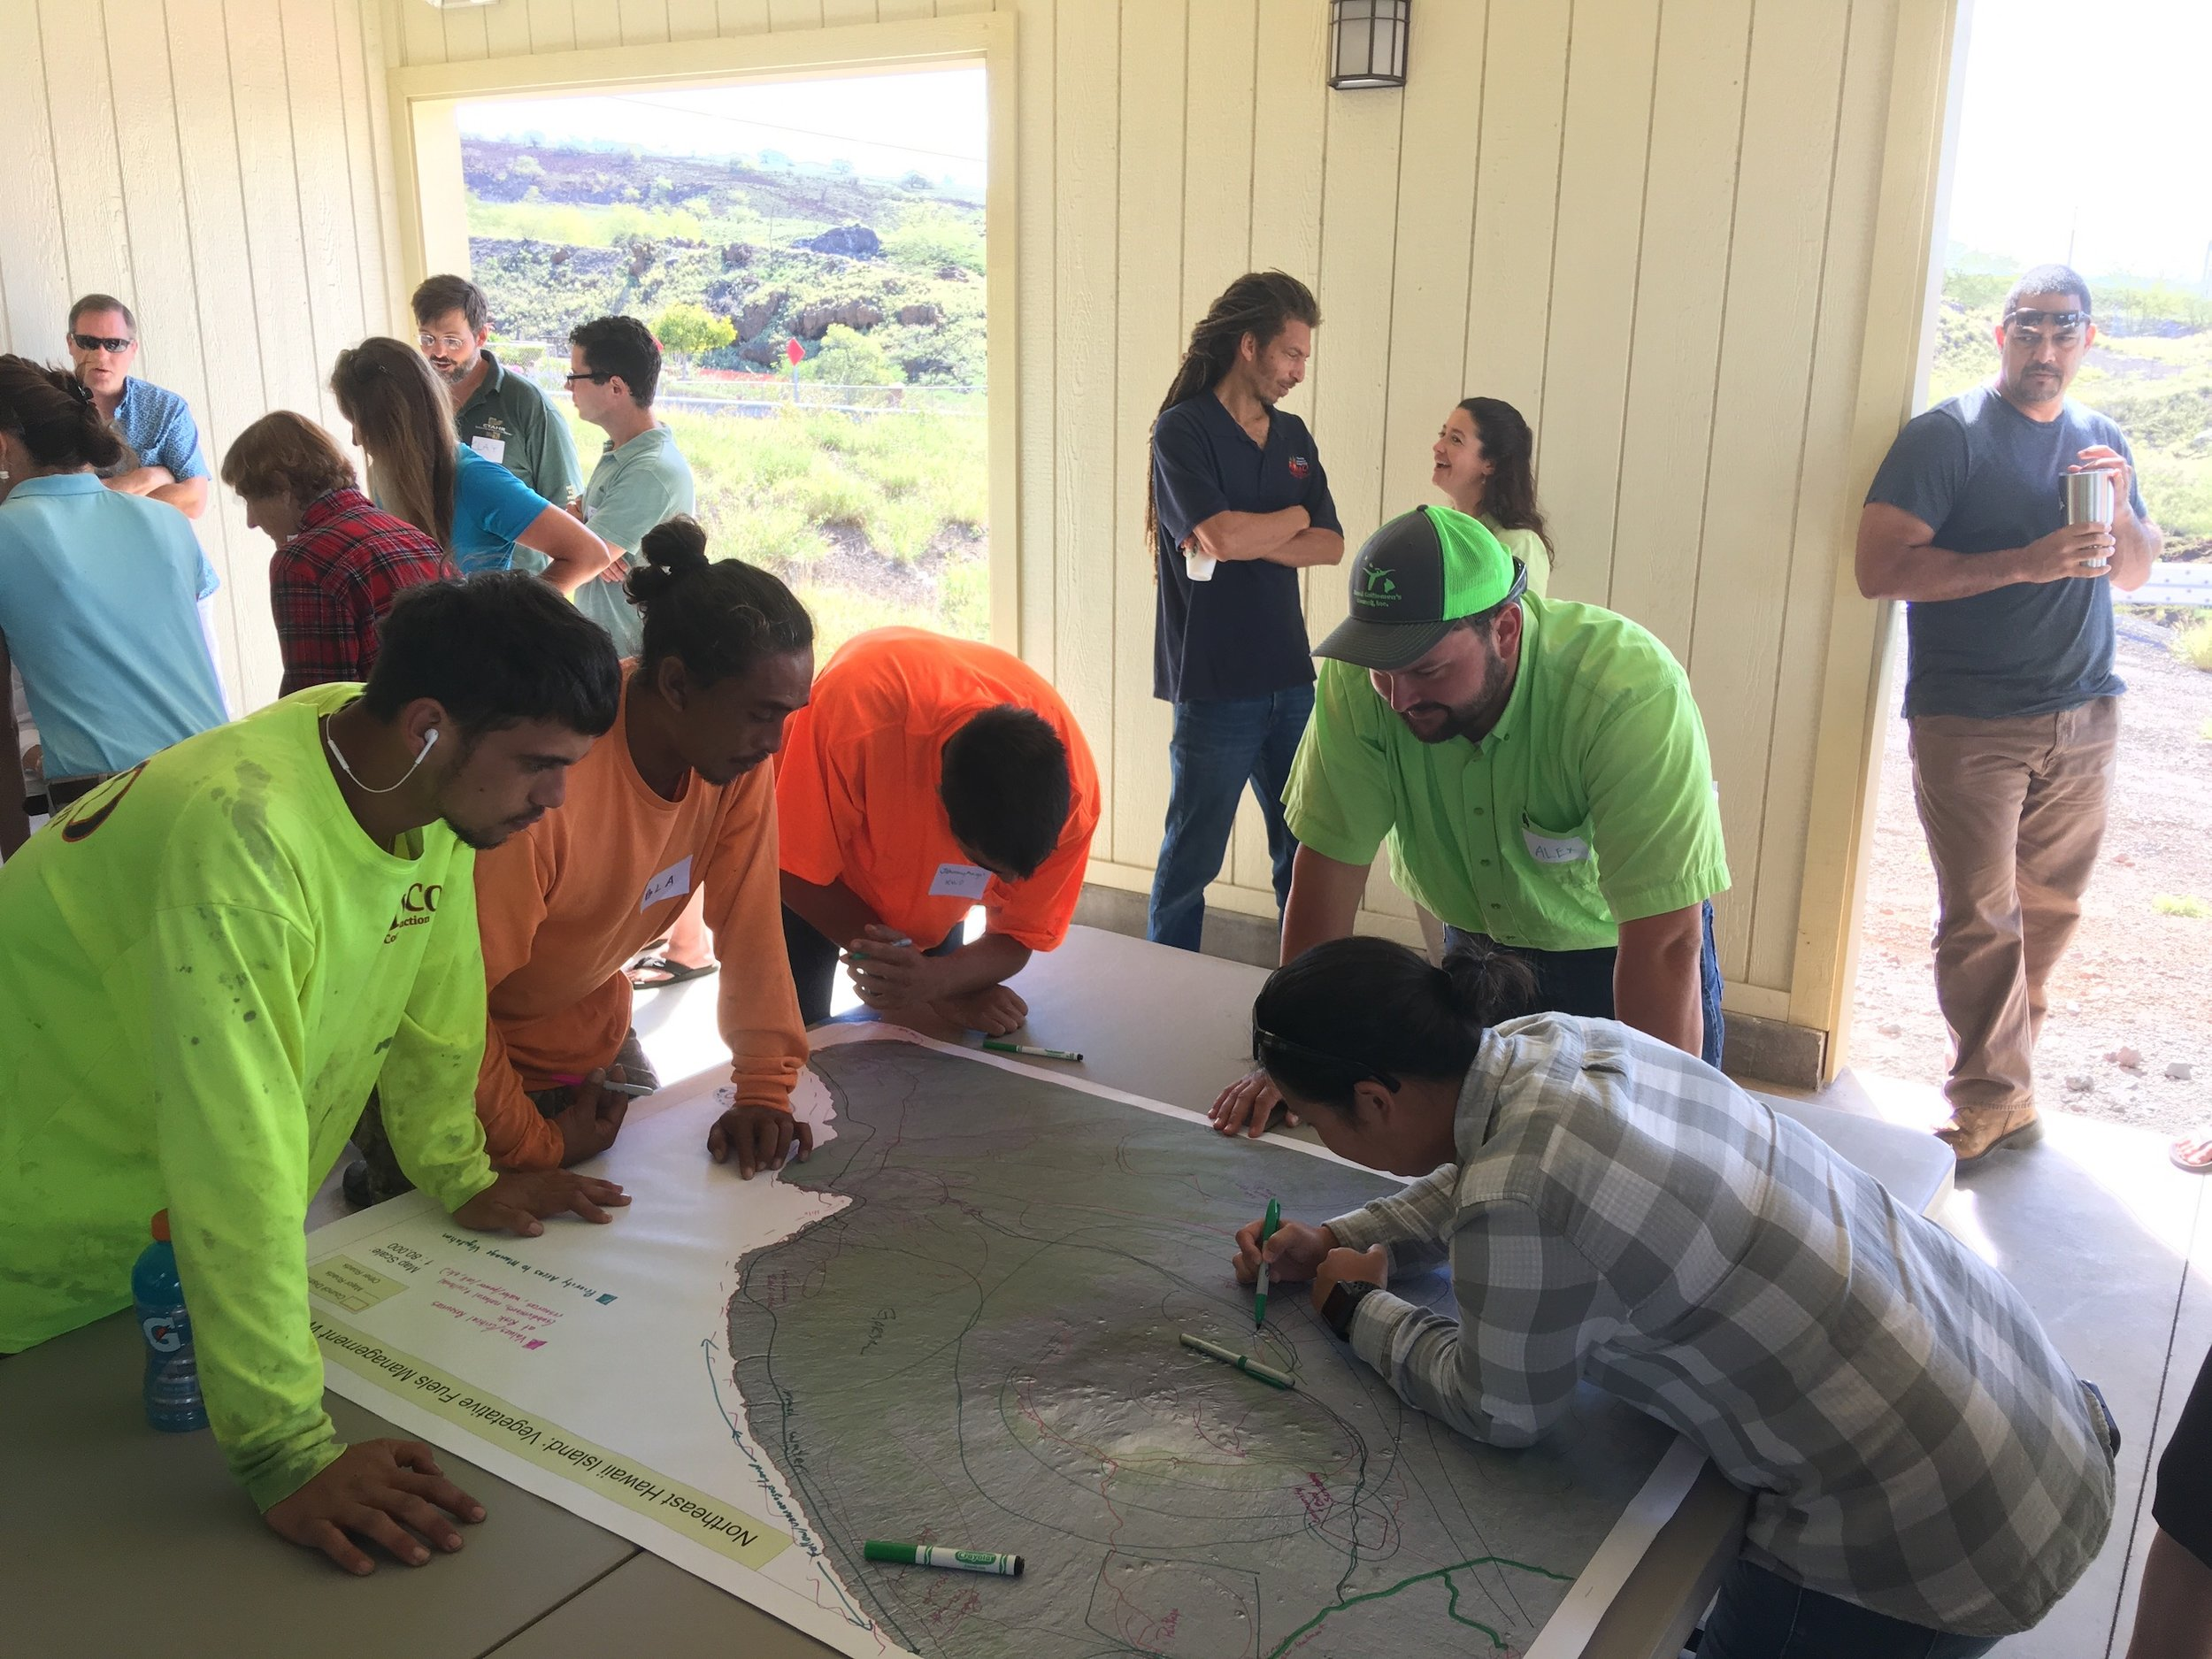 Hawaii Island Kailapa Vegetative Fuels Management Collaborative Action Planning Workshop_2_26_2019_27.jpg